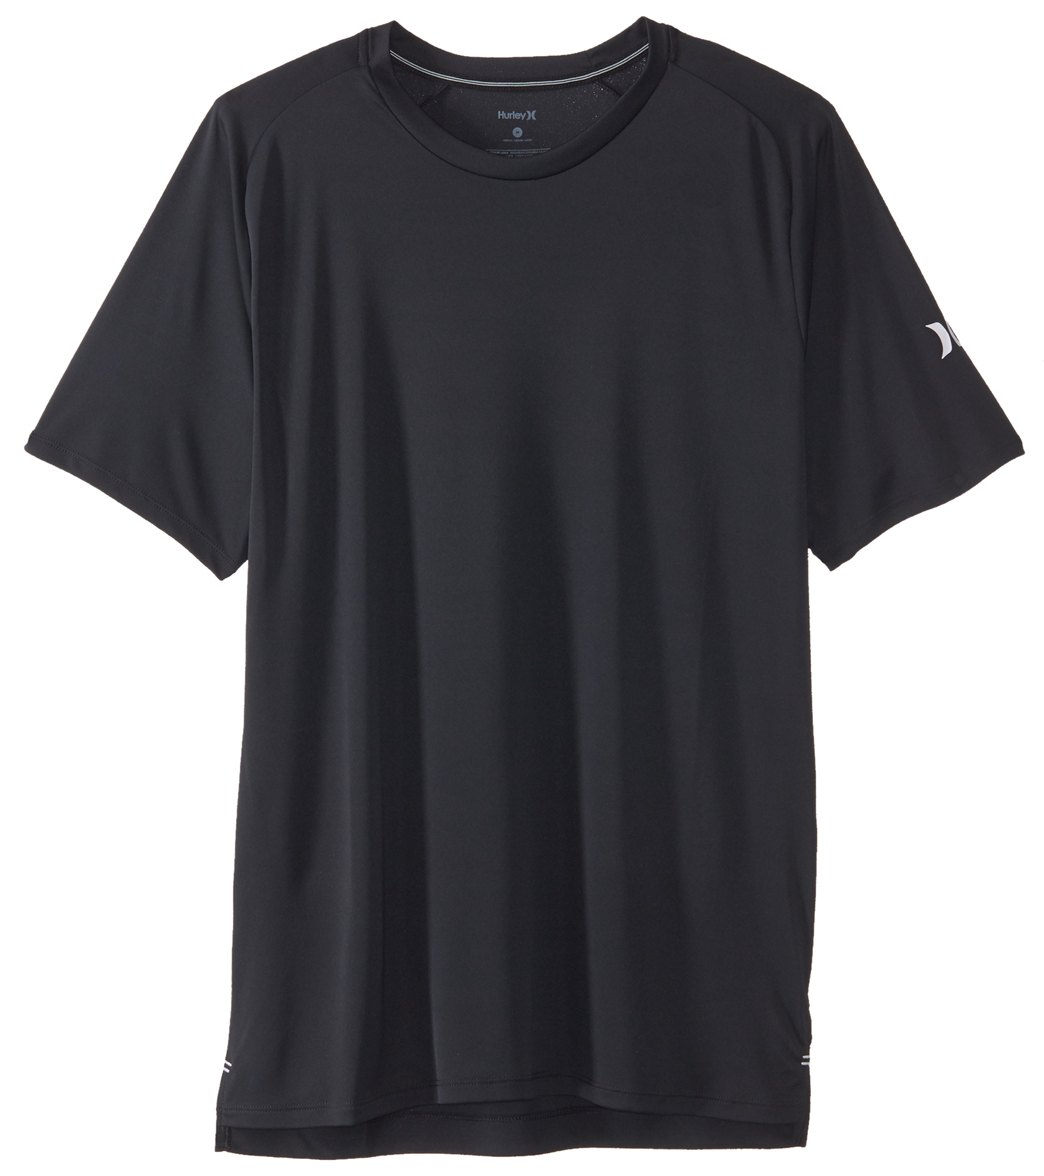 31bcff5d Hurley Men's Icon Quick Dry Short Sleeve Surf Shirt at SwimOutlet.com